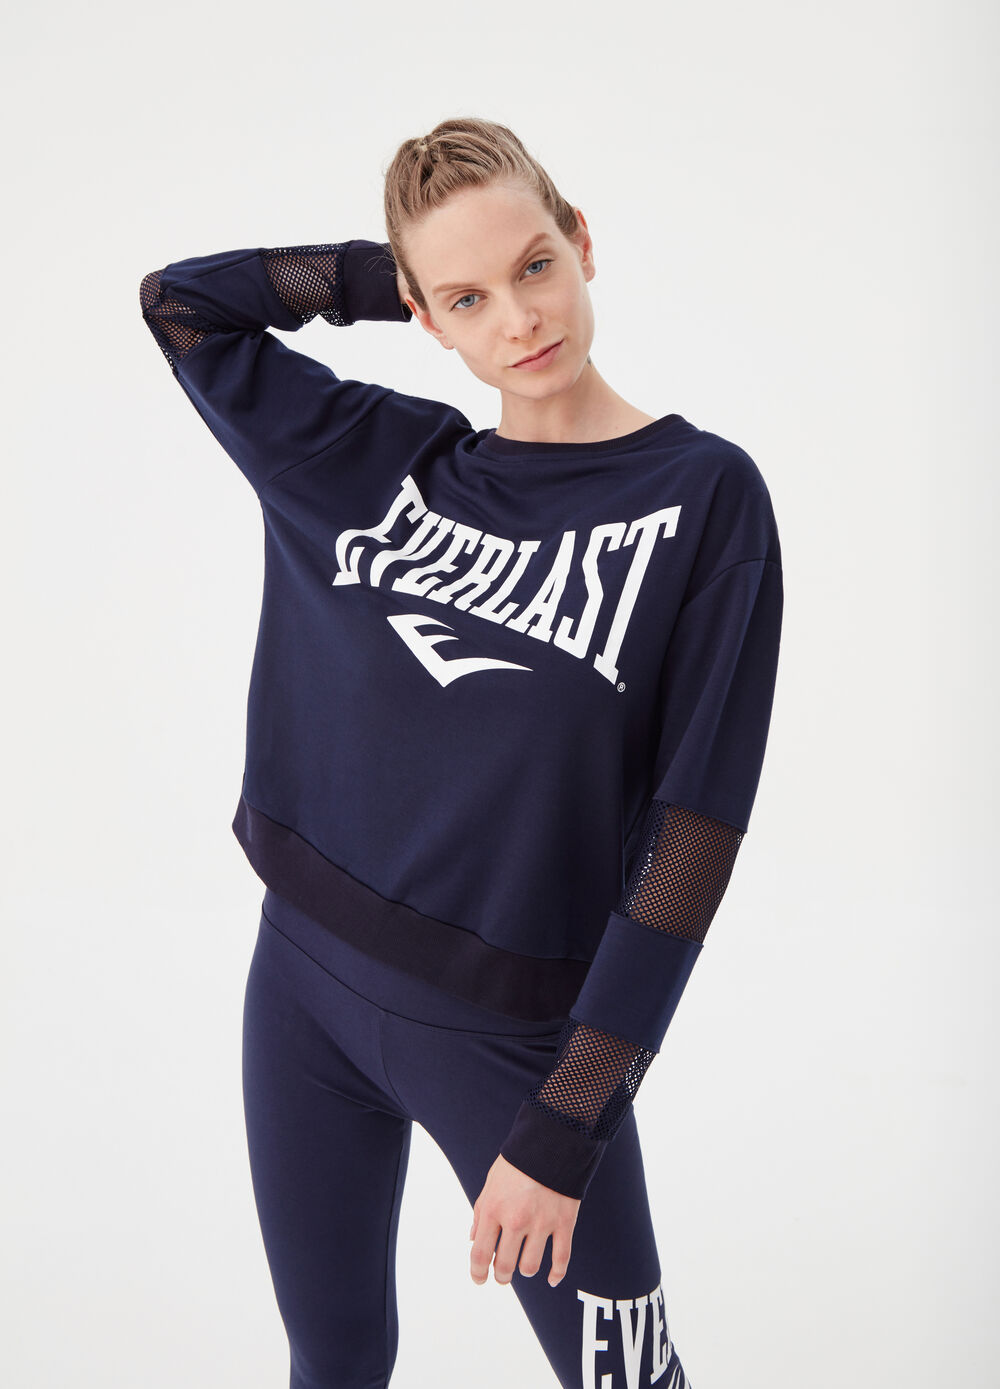 Everlast sweatshirt with openwork inserts